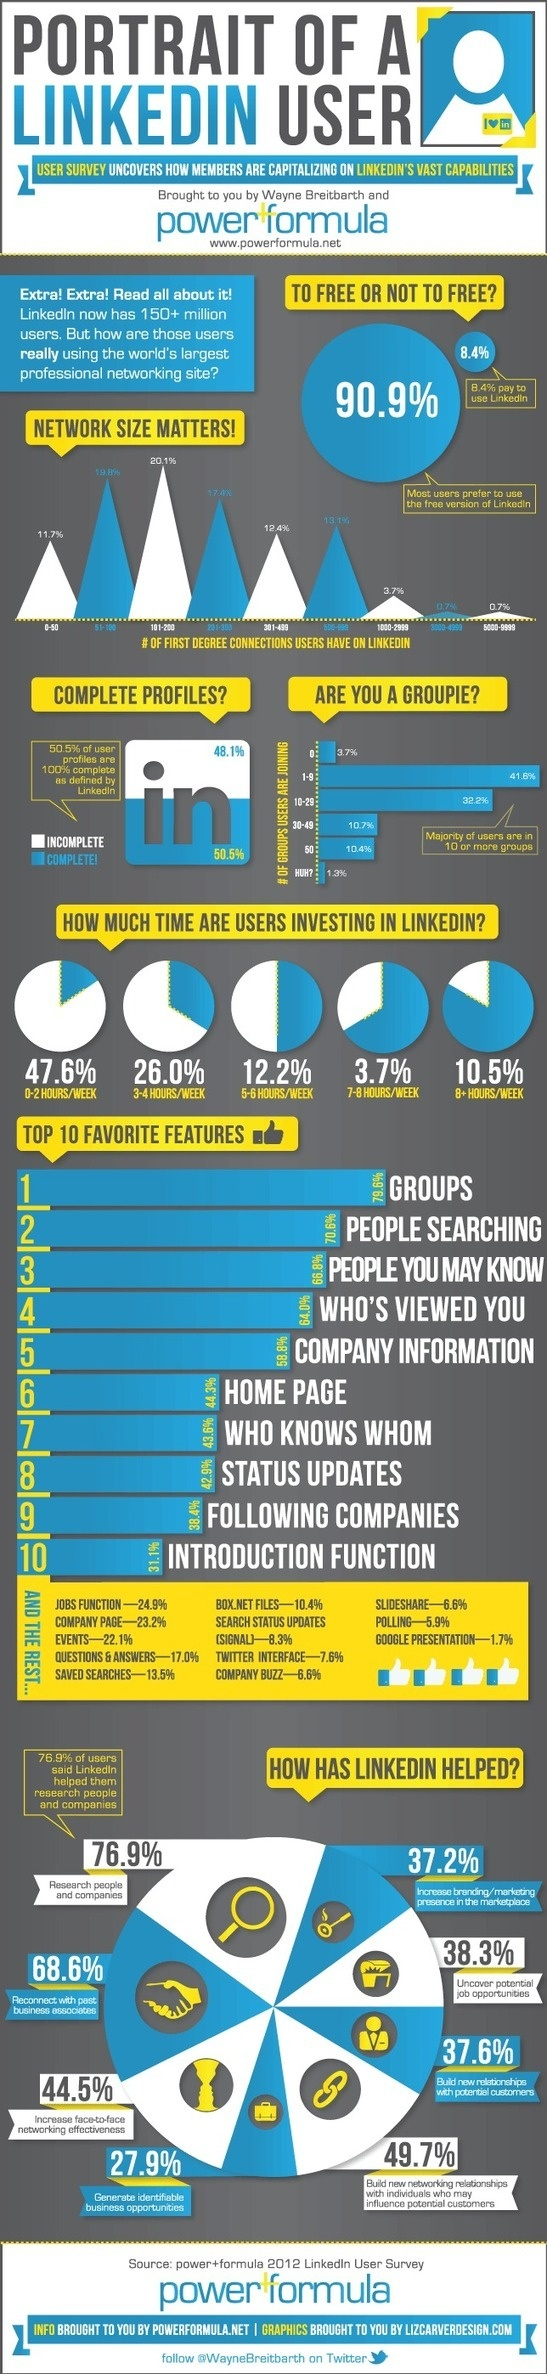 ideas about research companies linkedin infographic of users say linkedin helped them research people and companies said that it helped reconnect past business associates said it was